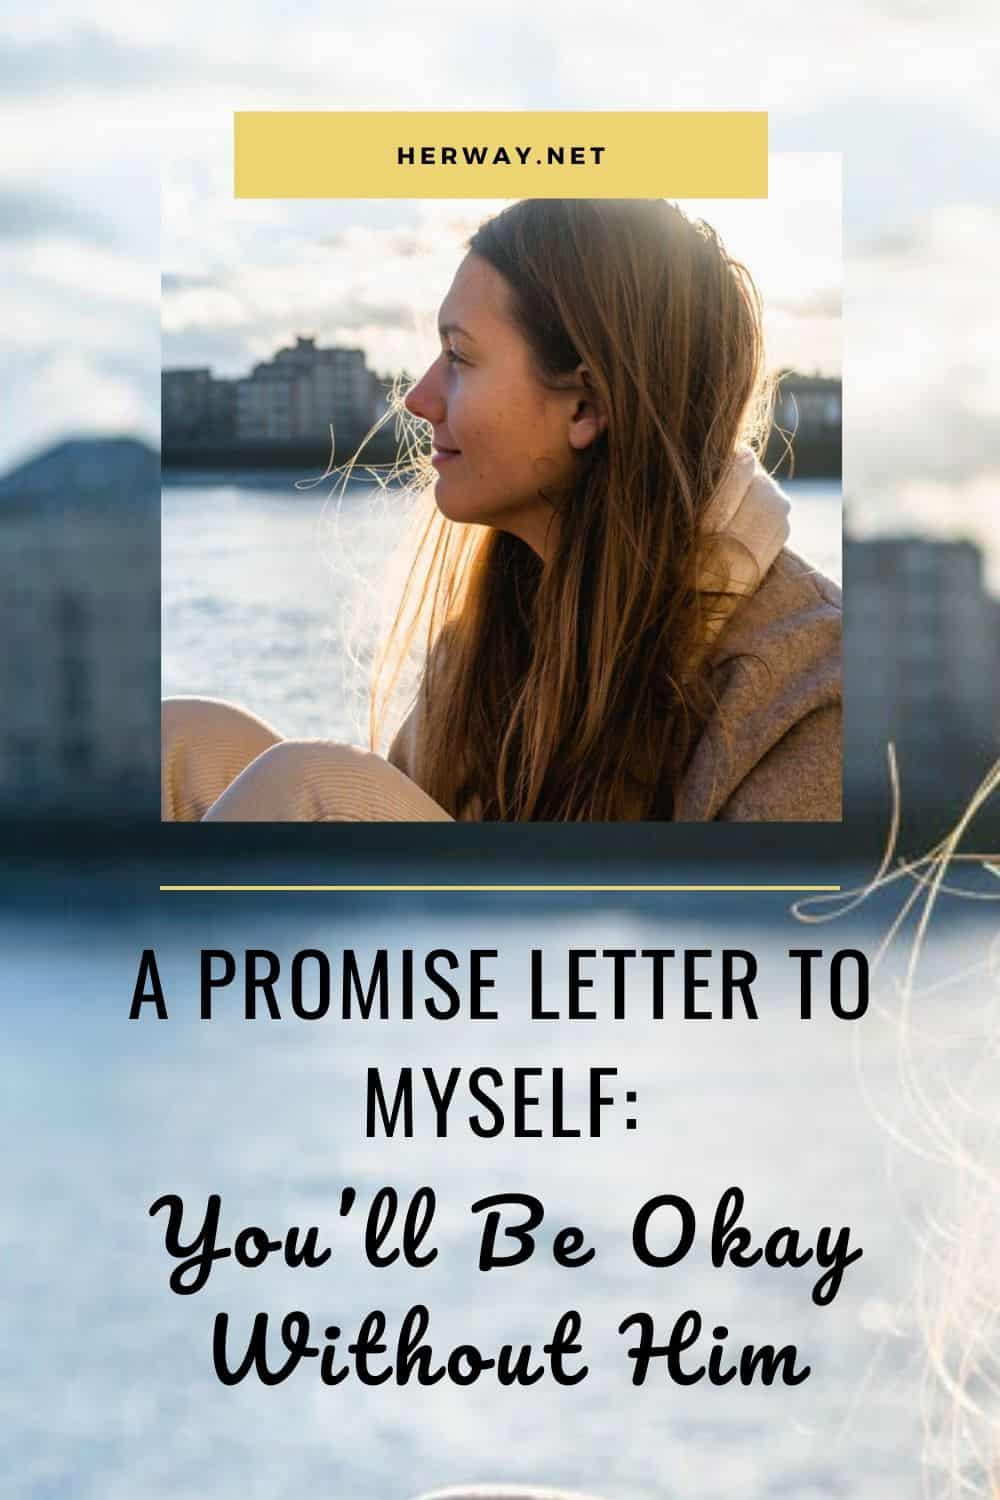 A Promise Letter To Myself: You'll Be Okay Without Him